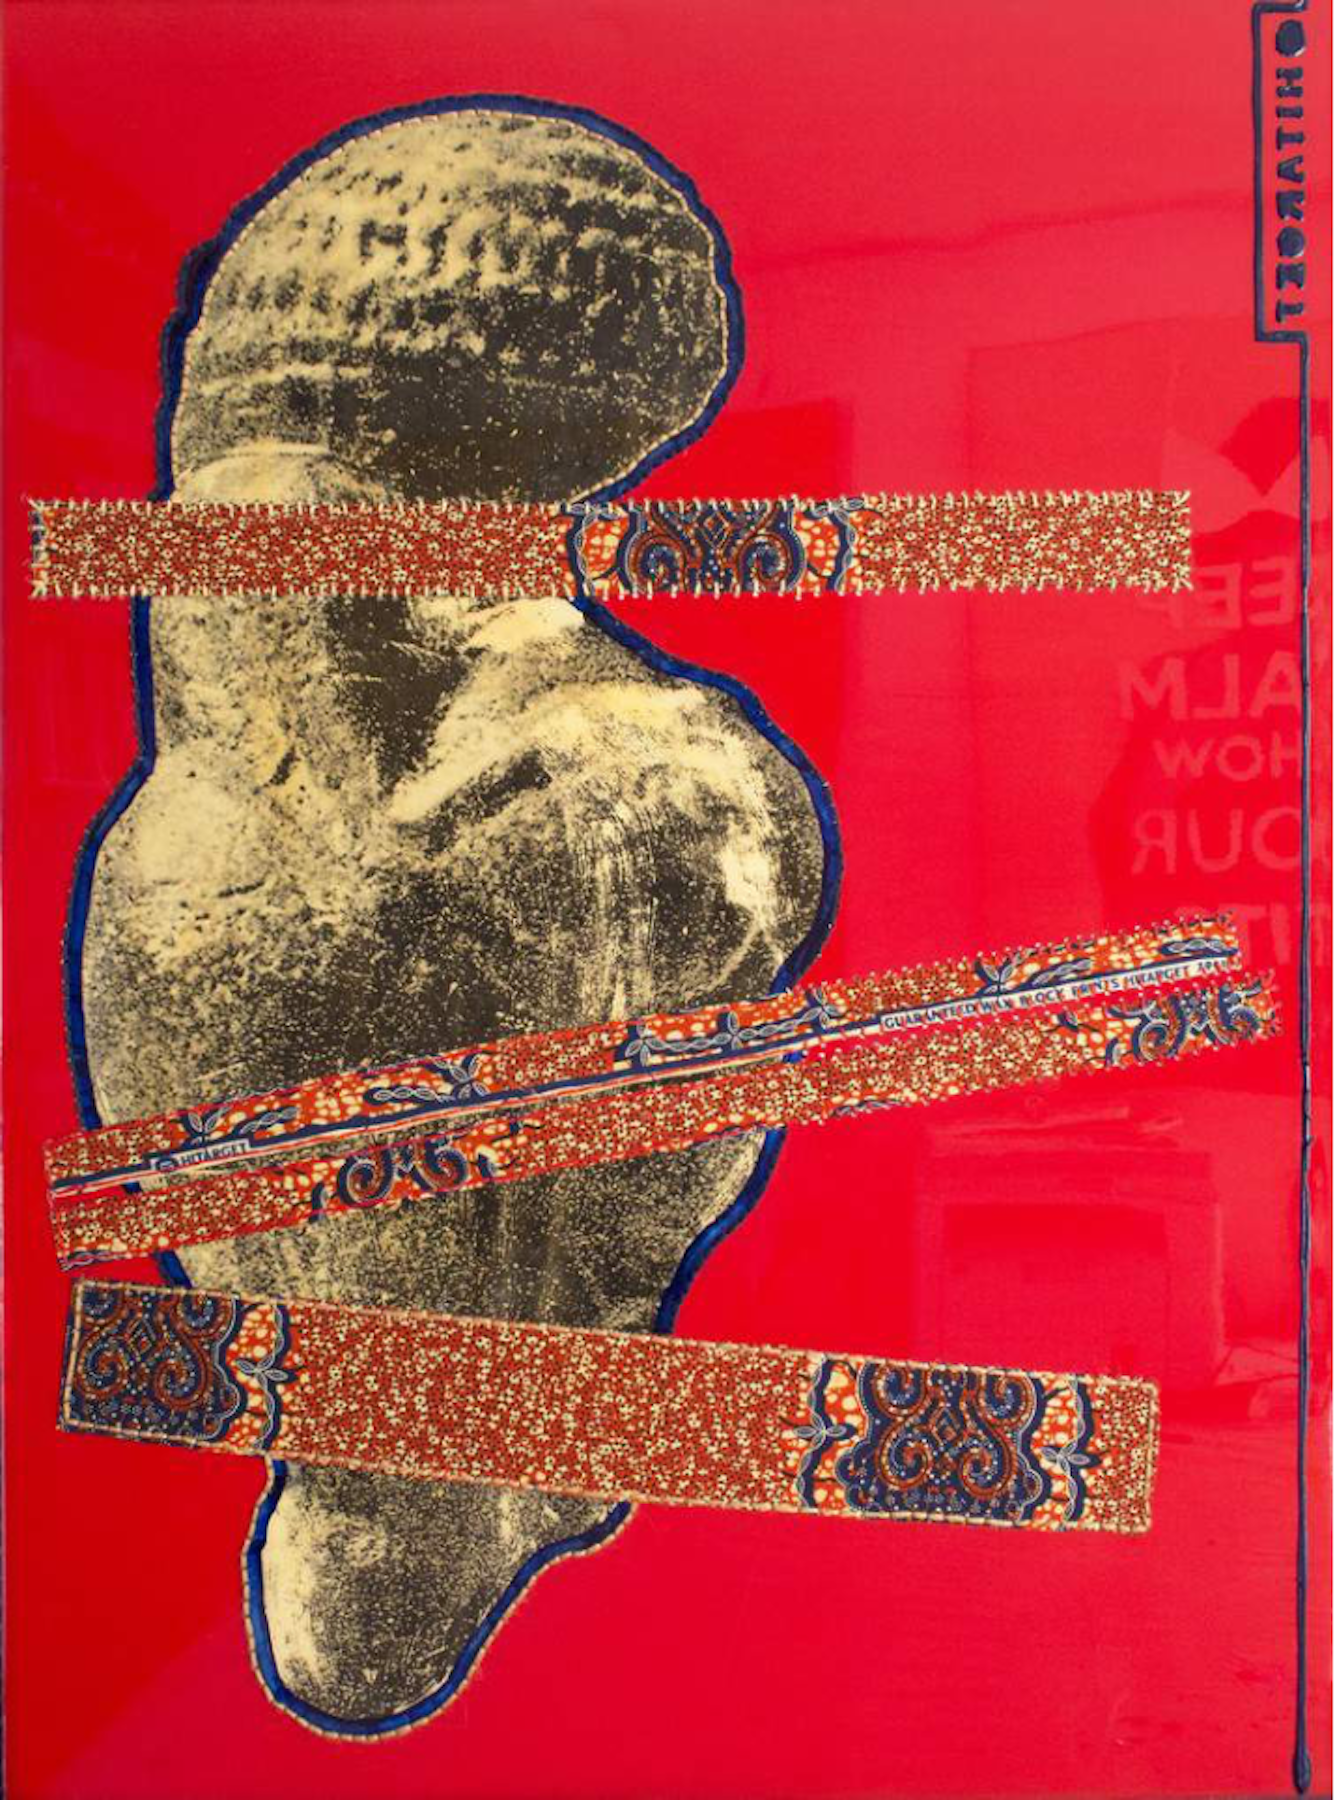 April Bey  Hitarget Venus (Red) , 2016 Ghanaian Hitarget Chinese Fabric Sewn into Resin on Panel, Acrylic Paint 40 x 36 in